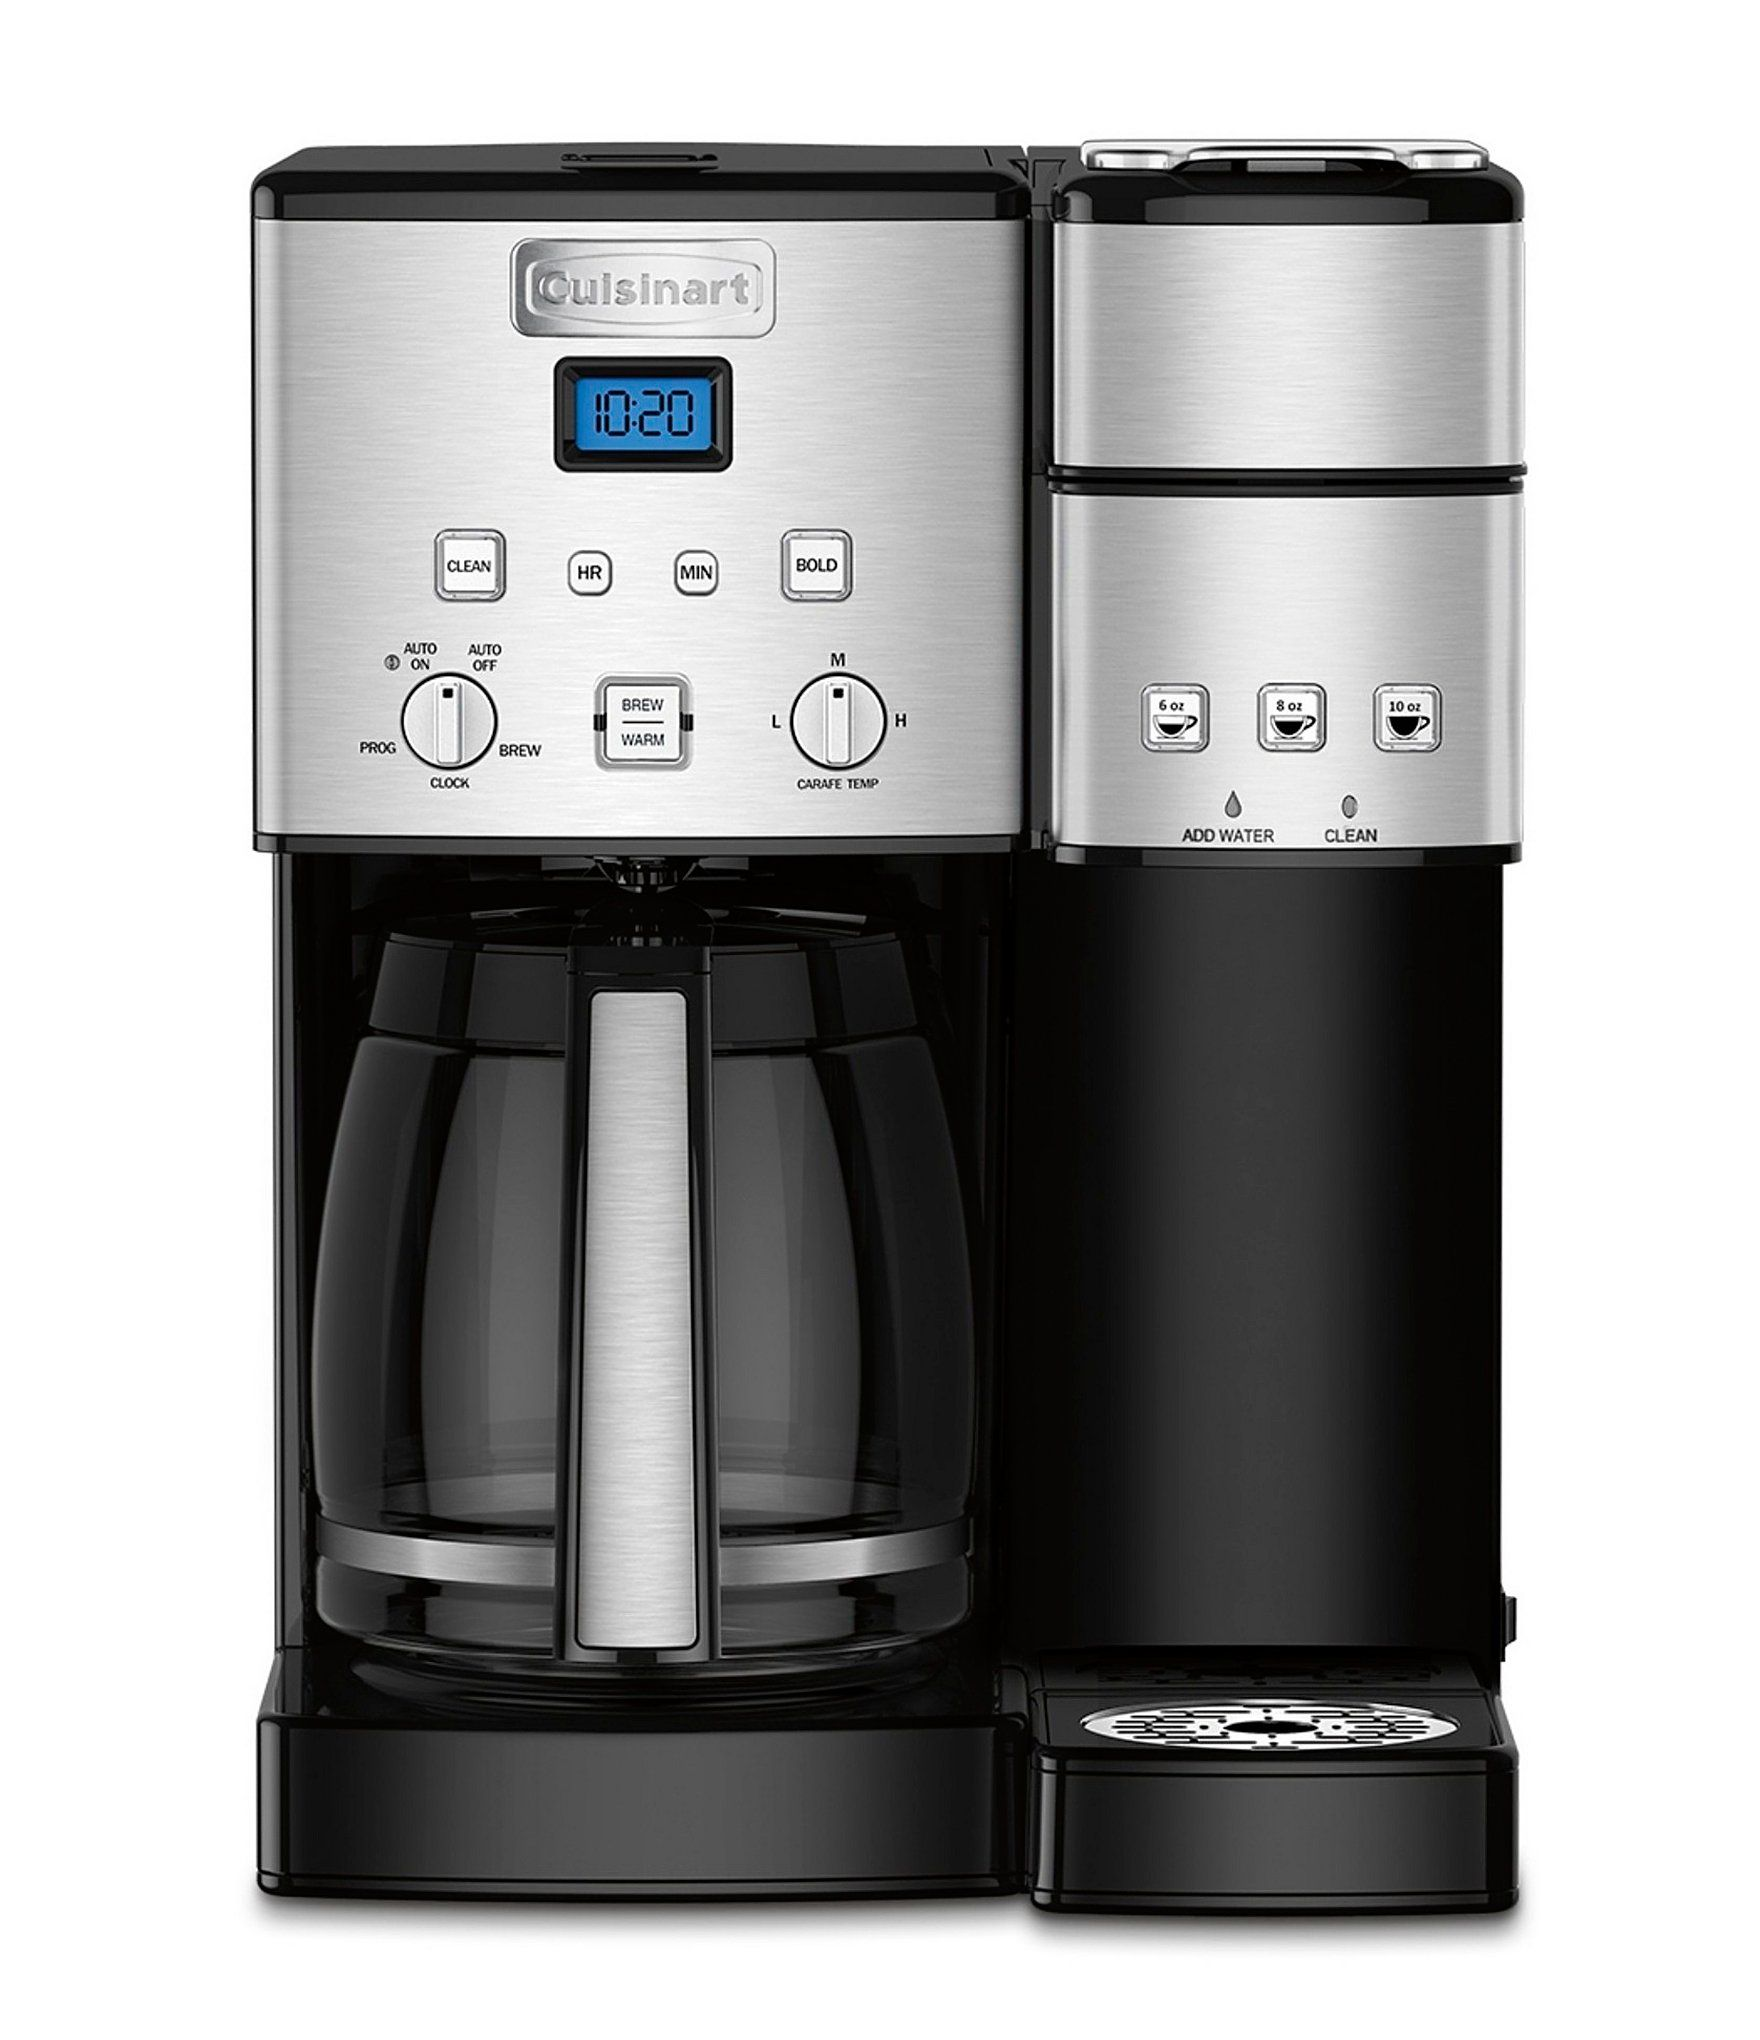 Cuisinart Coffee Center 12 Cup Coffee Maker Single Serve Brewer Dillard S Cuisinart Coffee Maker Stainless Steel Coffee Maker Single Coffee Maker